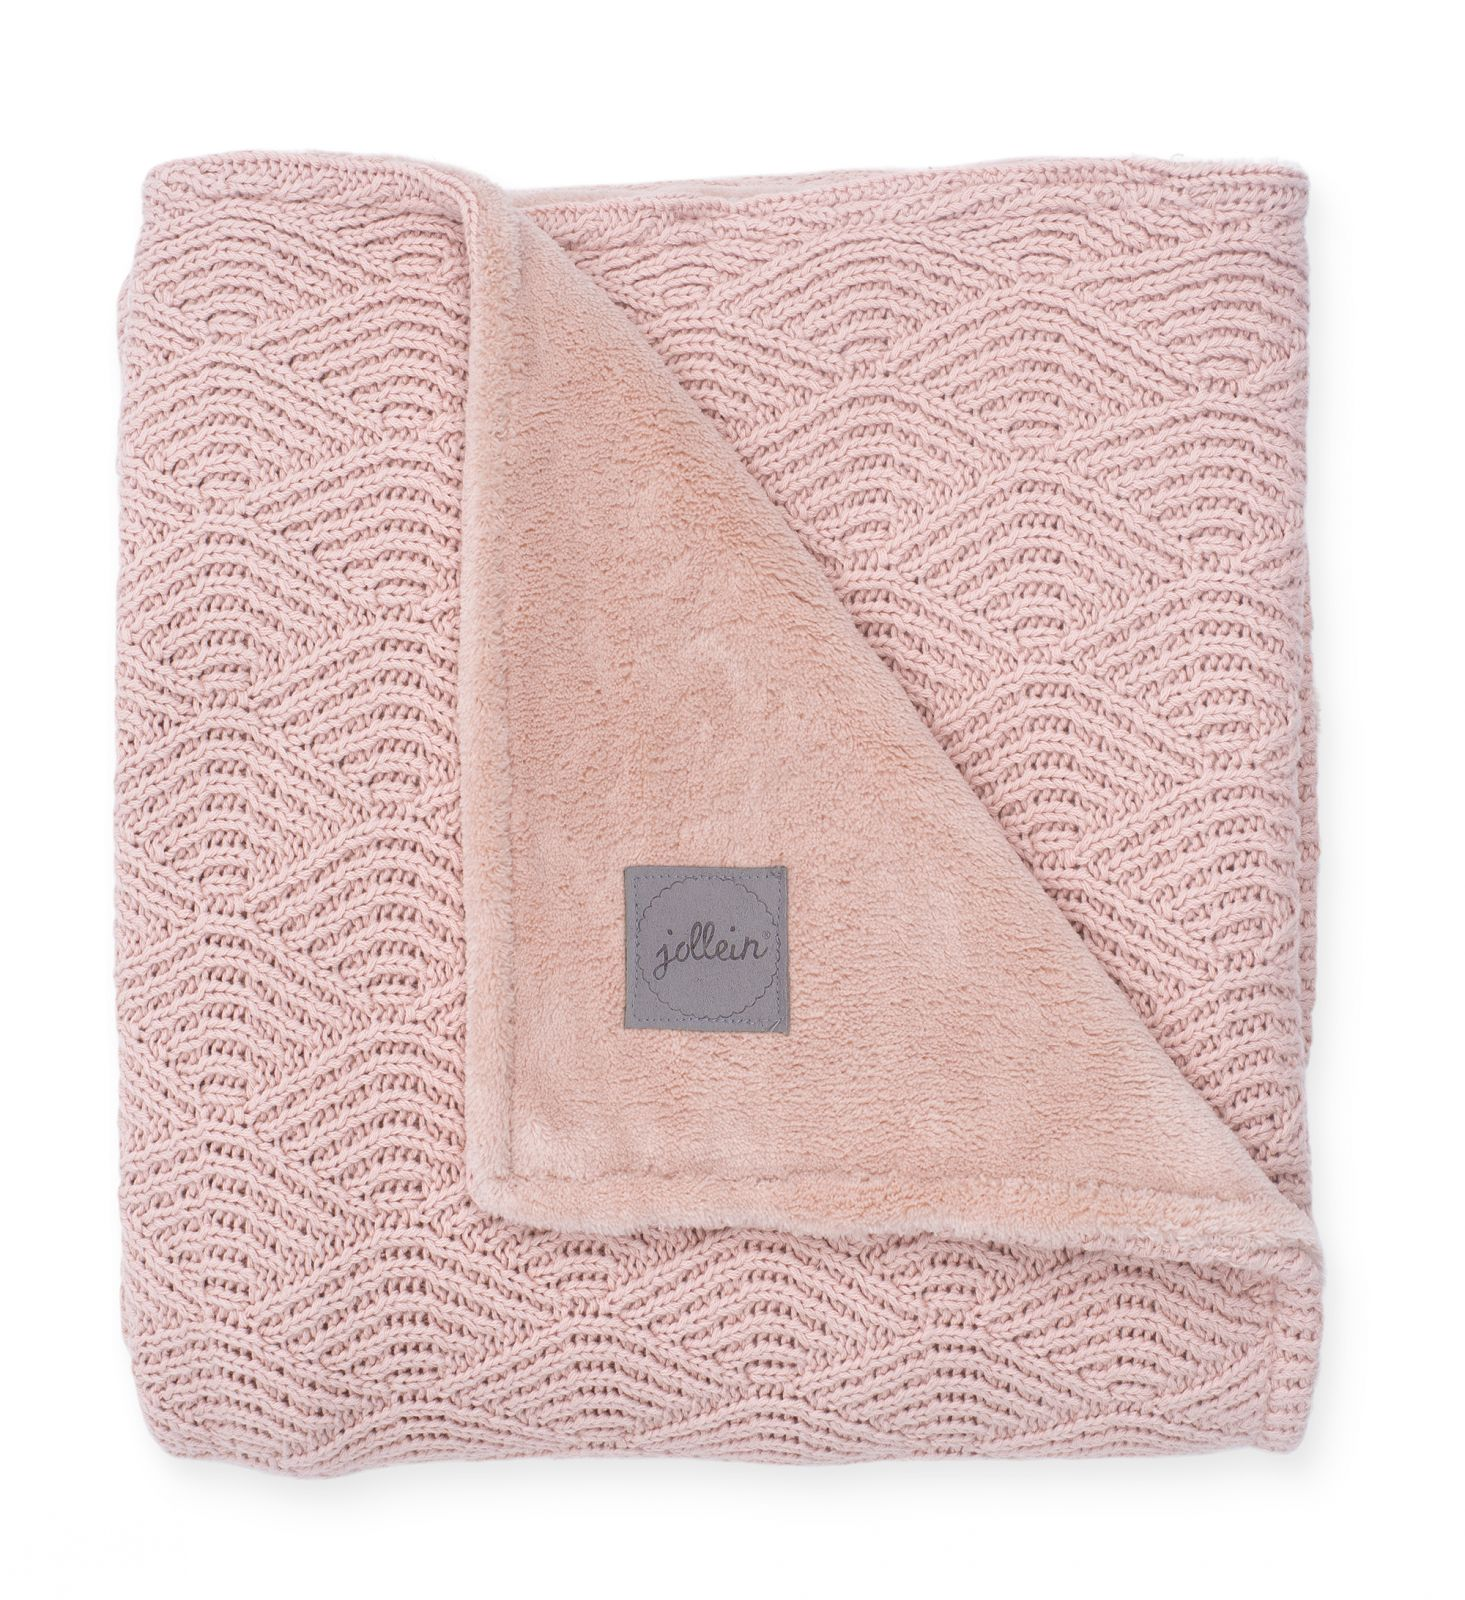 Jollein Deka 75x100cm River knit pale pink/coral fleece